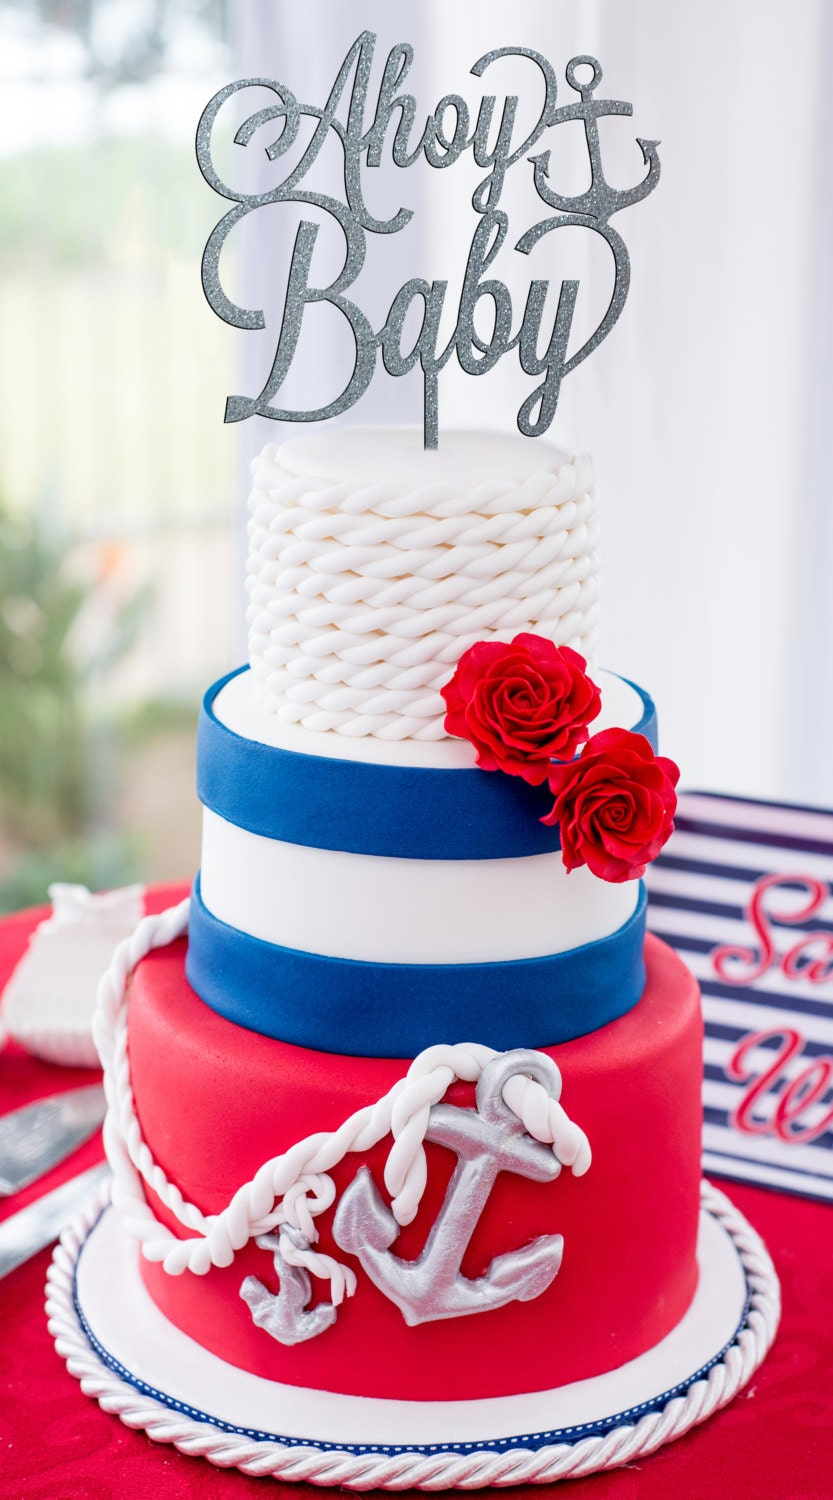 nautical garden decor.htm nautical baby shower ahoy baby cake topper baby shower cake etsy  nautical baby shower ahoy baby cake